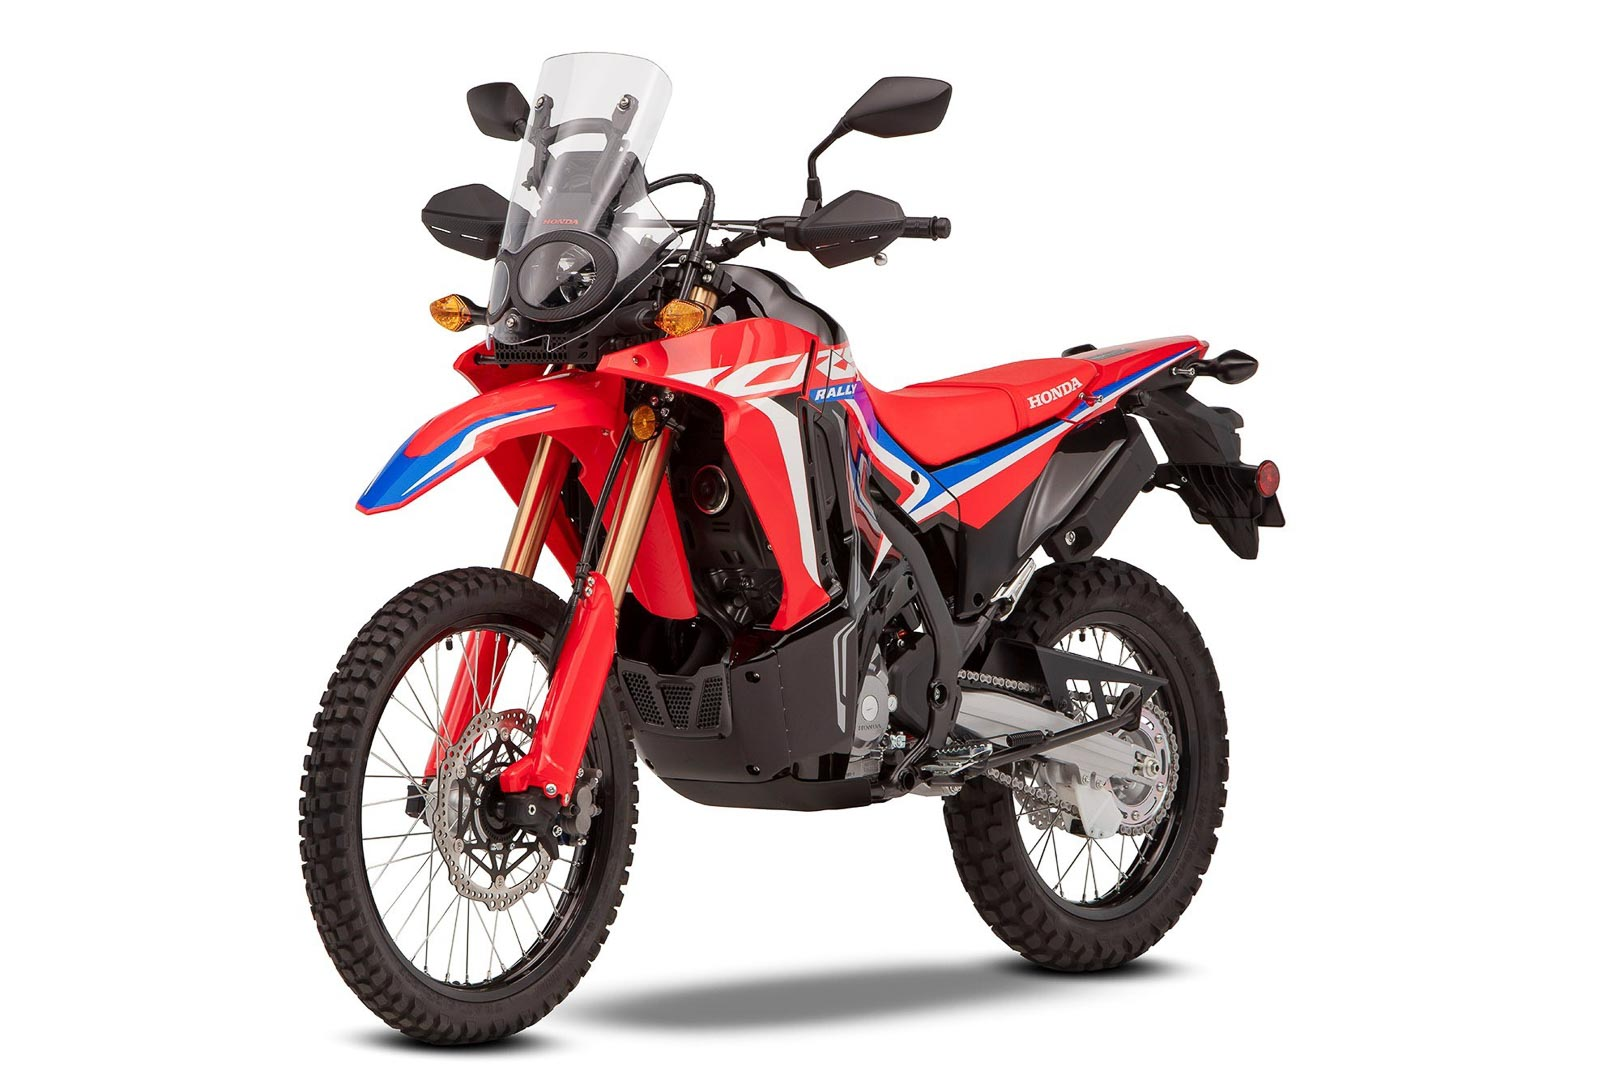 2021 Honda CRF300L and CRF300L Rally First Look (12 Fast Facts)